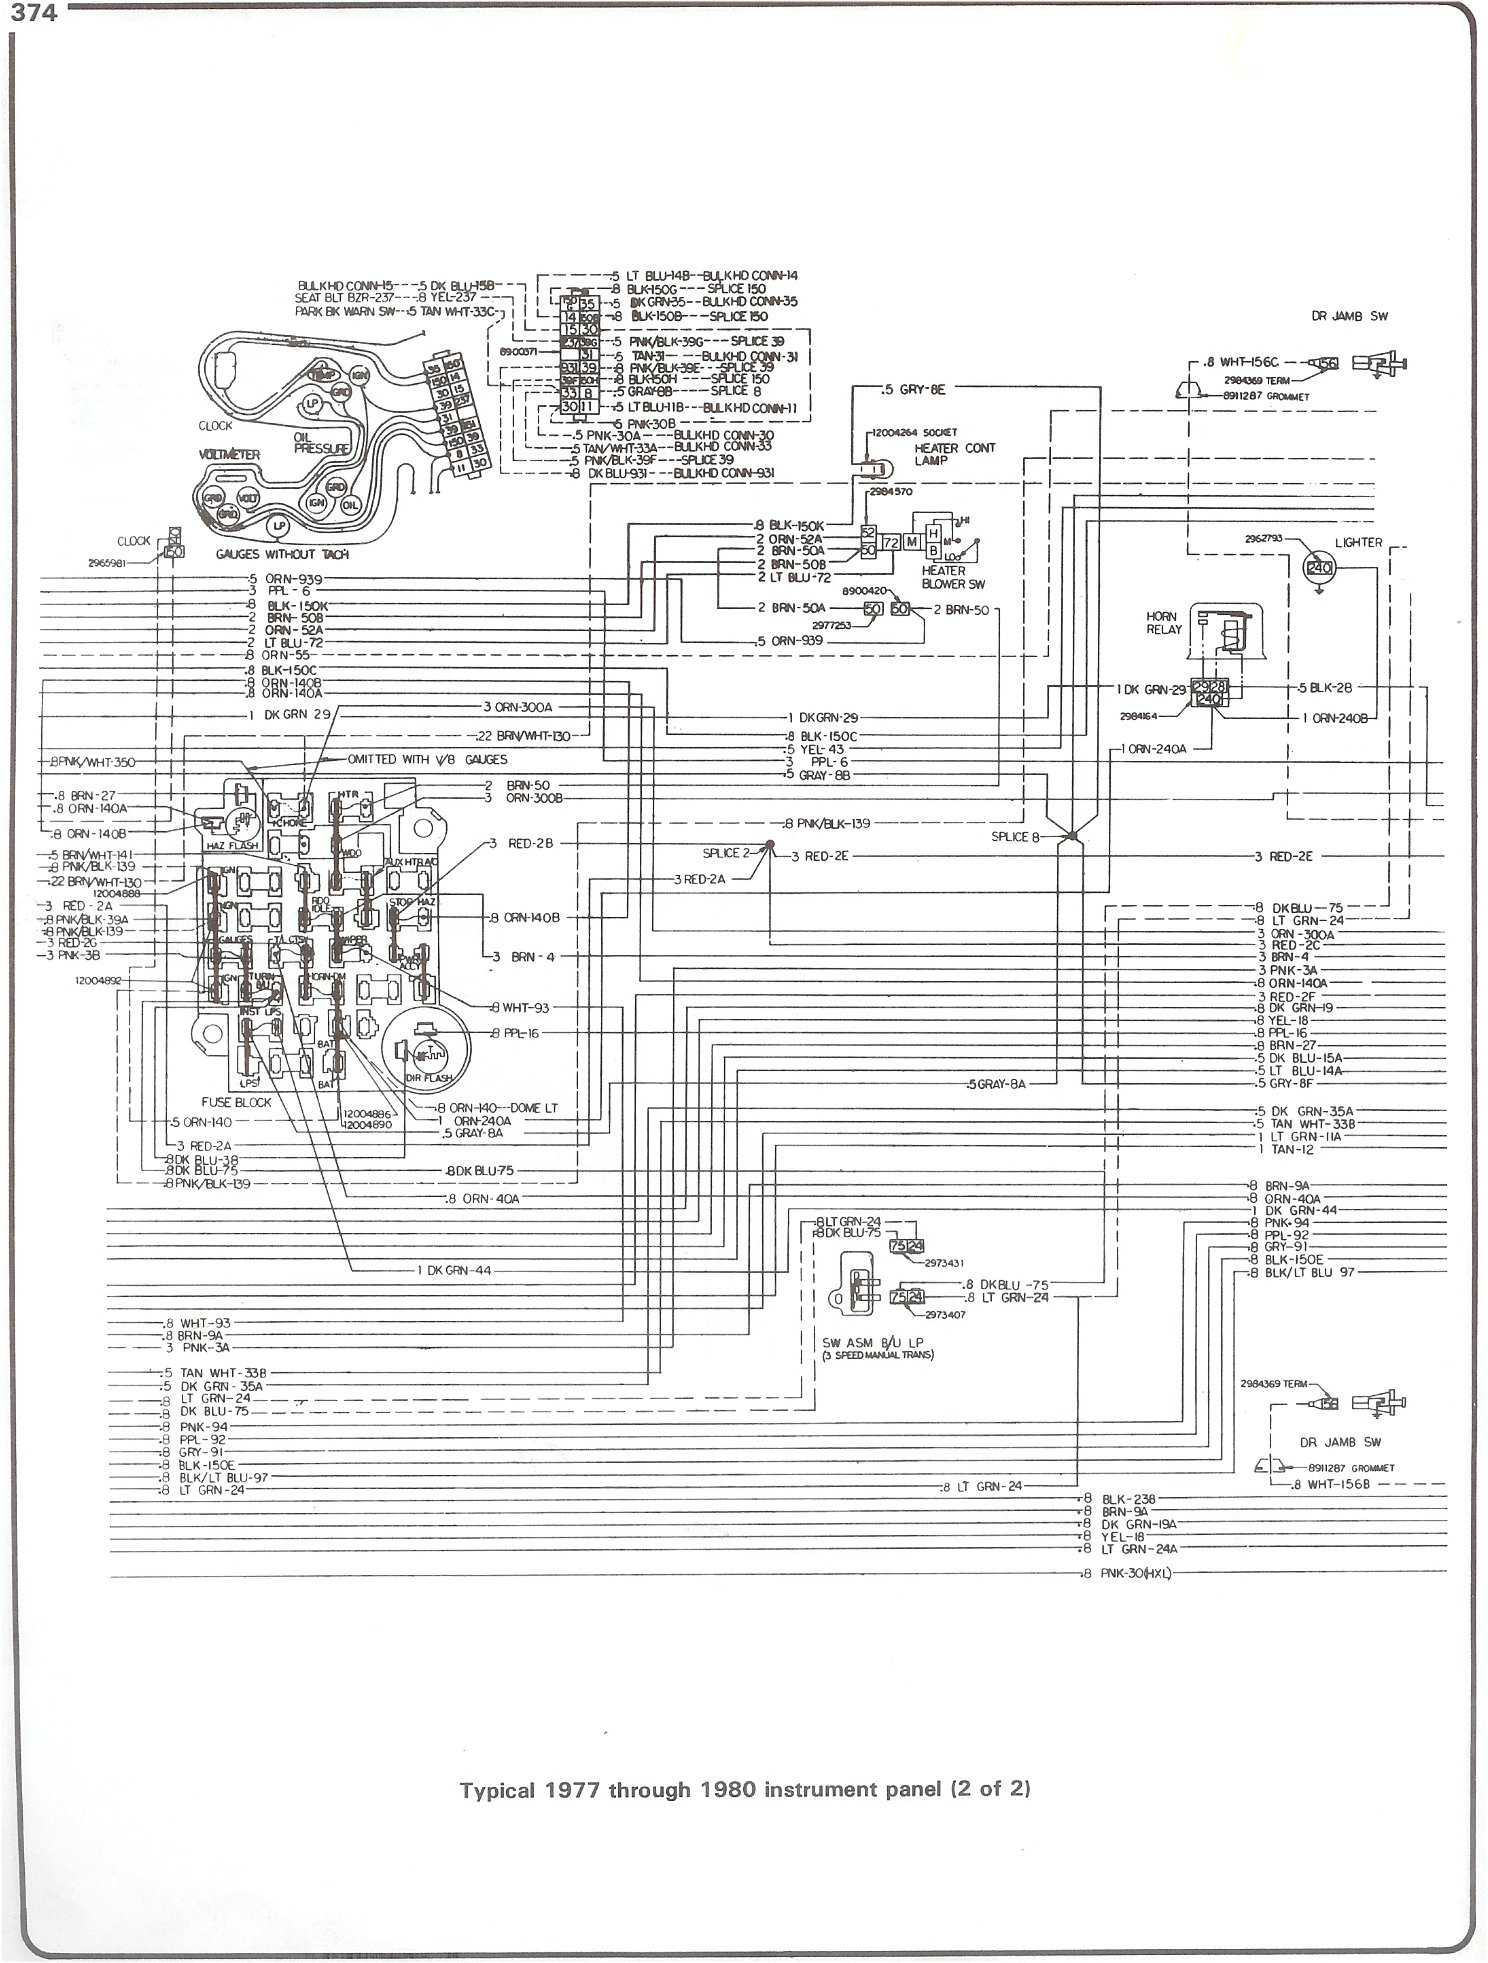 1975 Chevy P30 Wiring Diagram Data Wiring Schema 1972 Chevy Van 78 Chevy  Van Fuse Box